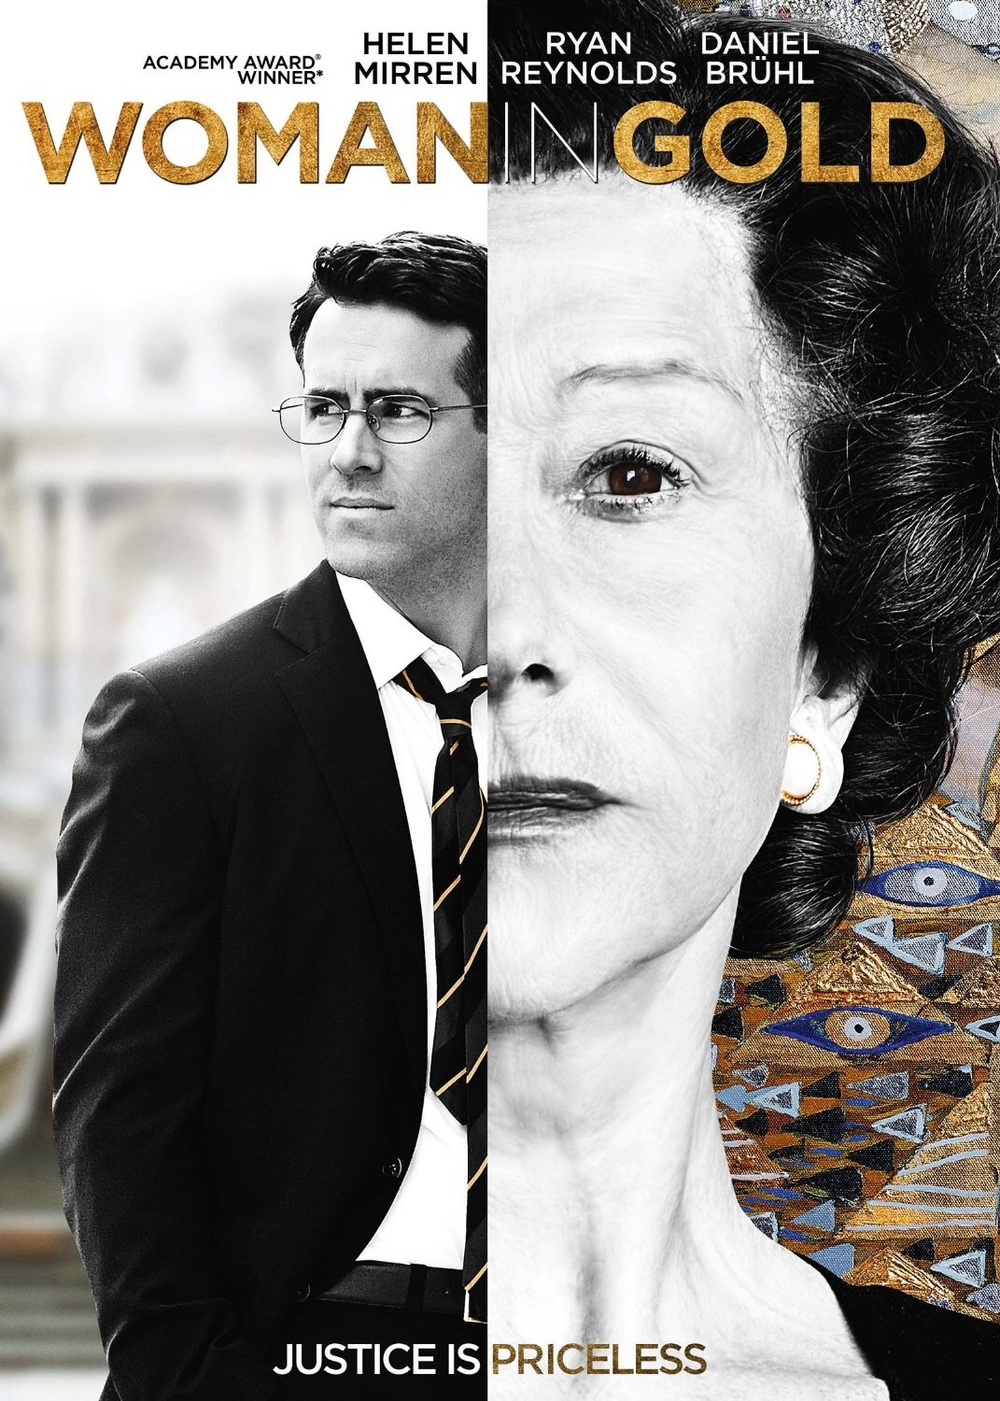 Woman in Gold Poster   Source: http://www.amazon.com/Woman-Gold-Ryan-Reynolds/dp/B00VU4YO7K